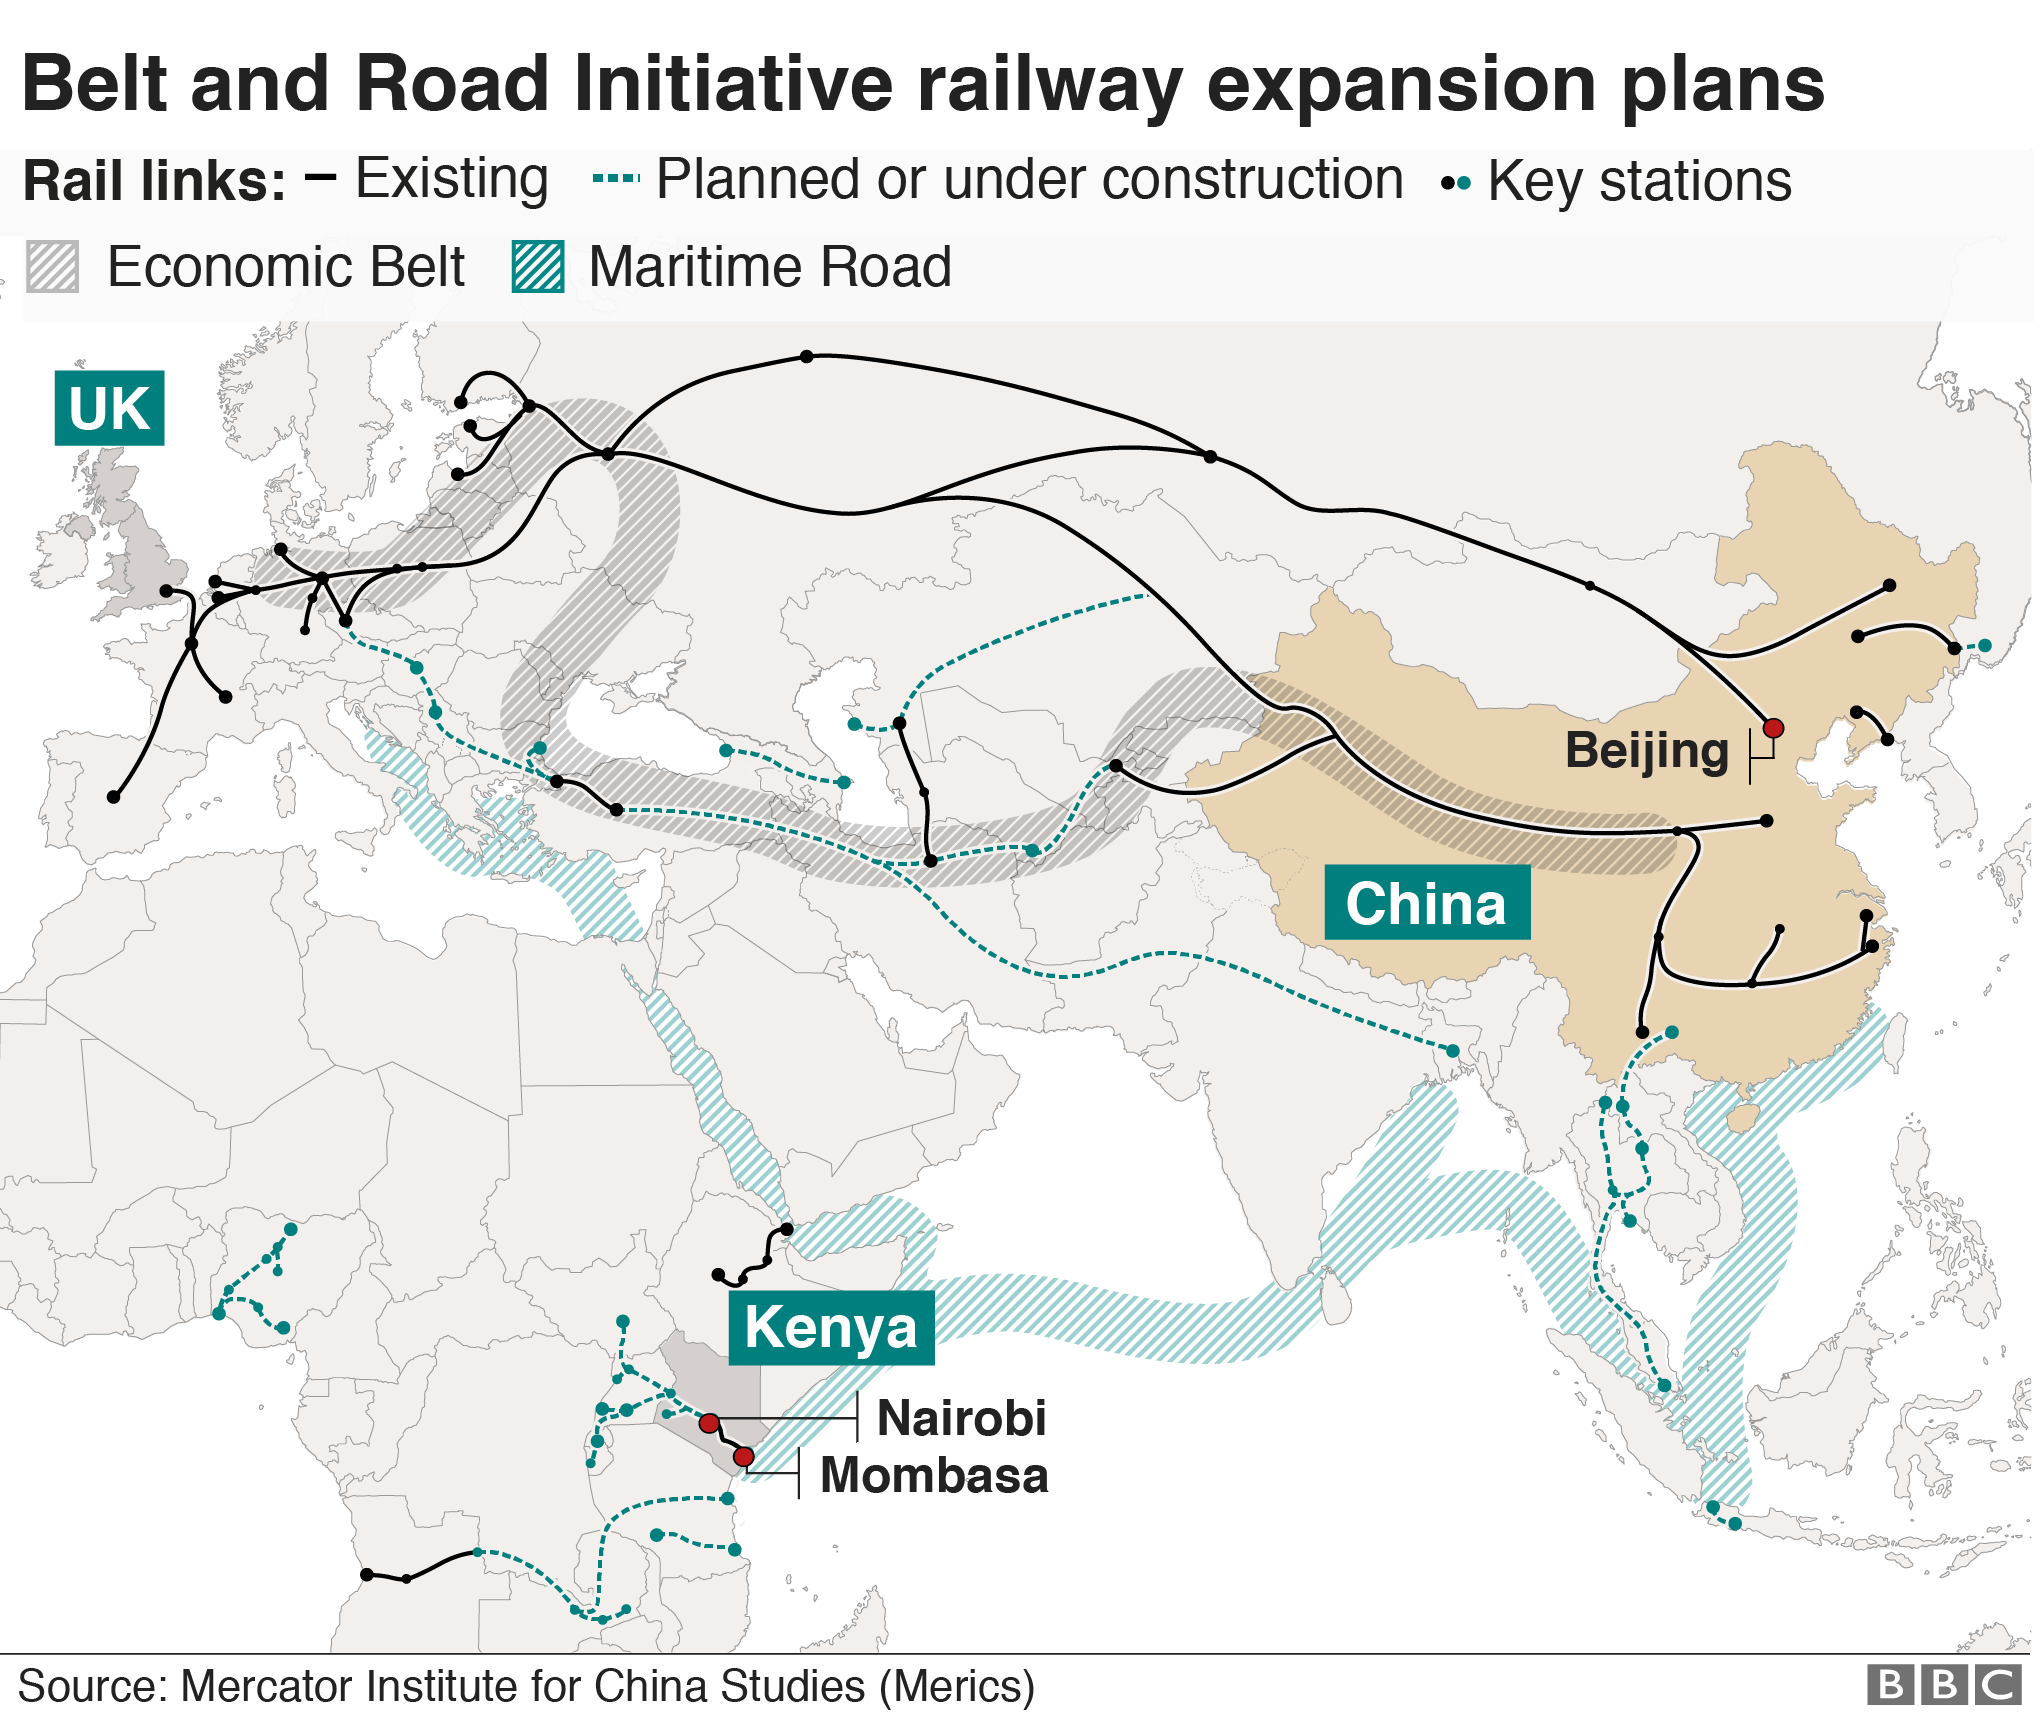 Map showing extent of belt and road initiative